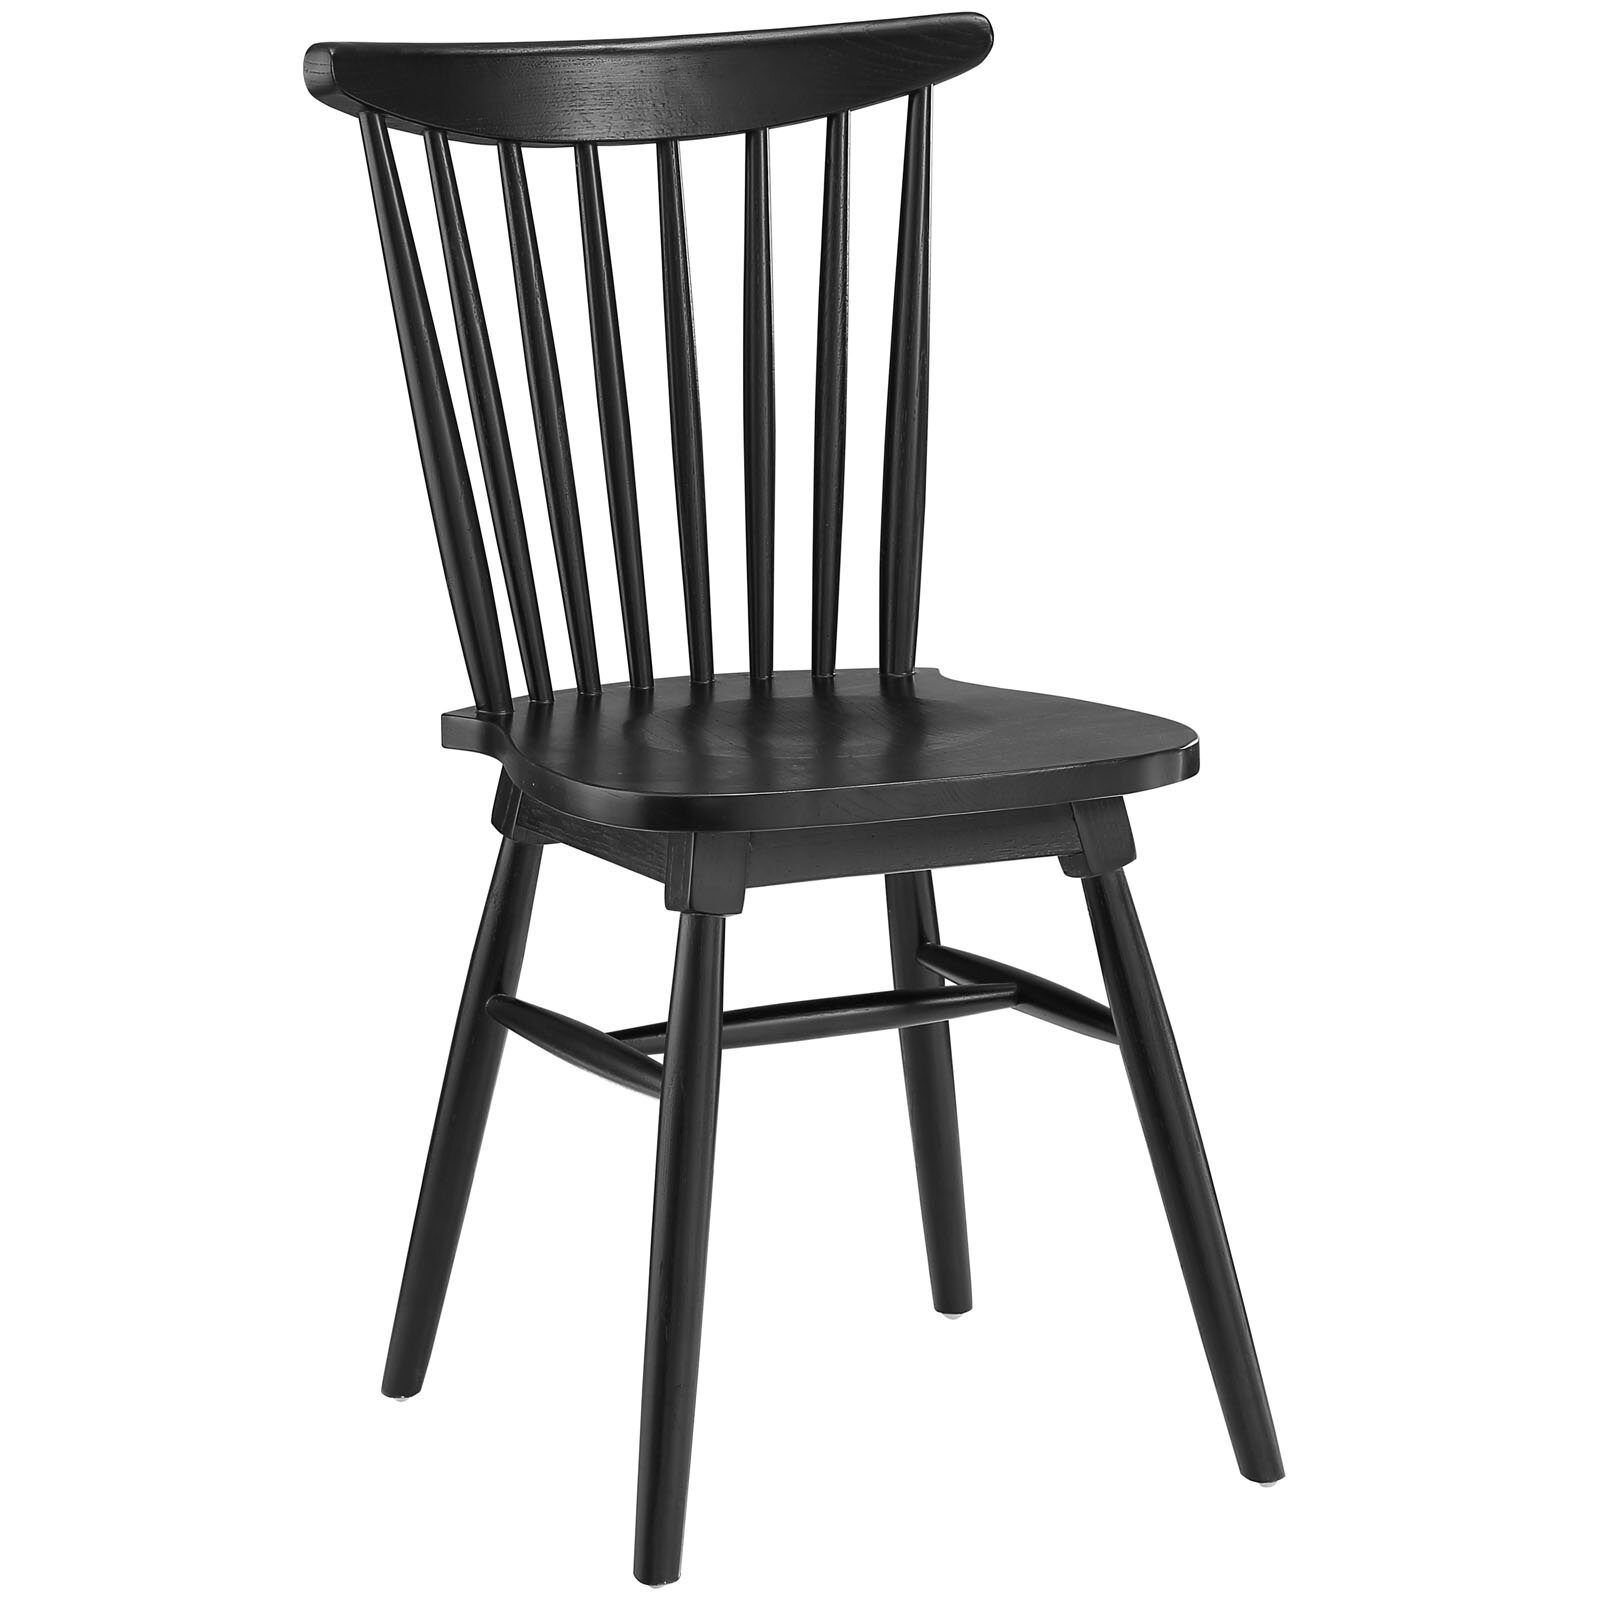 Modway amble solid wood dining chair reviews wayfair